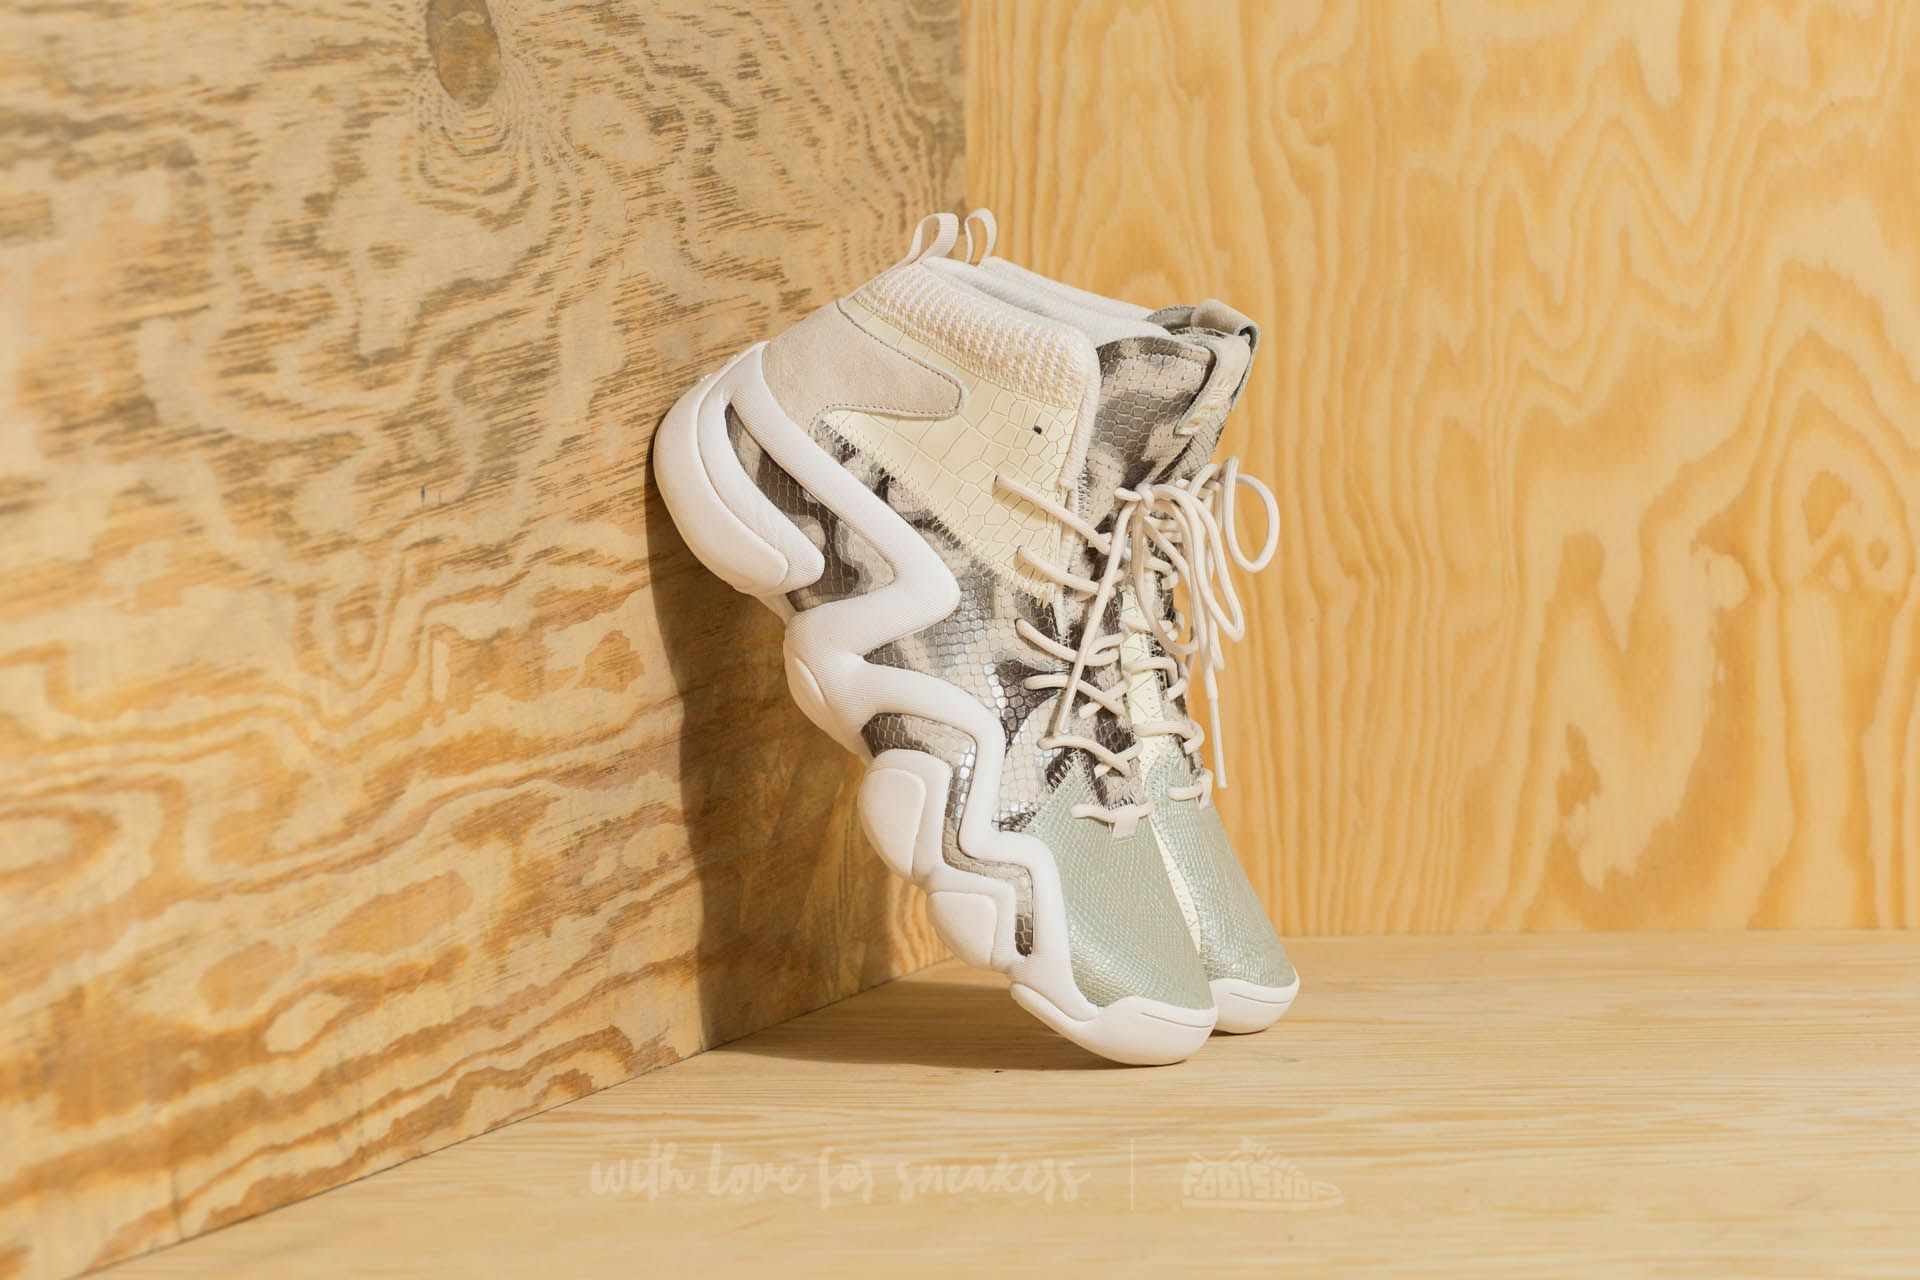 reputable site cba06 2dafc adidas Crazy 8 ADV. Crystal White Crystal White Ftw White